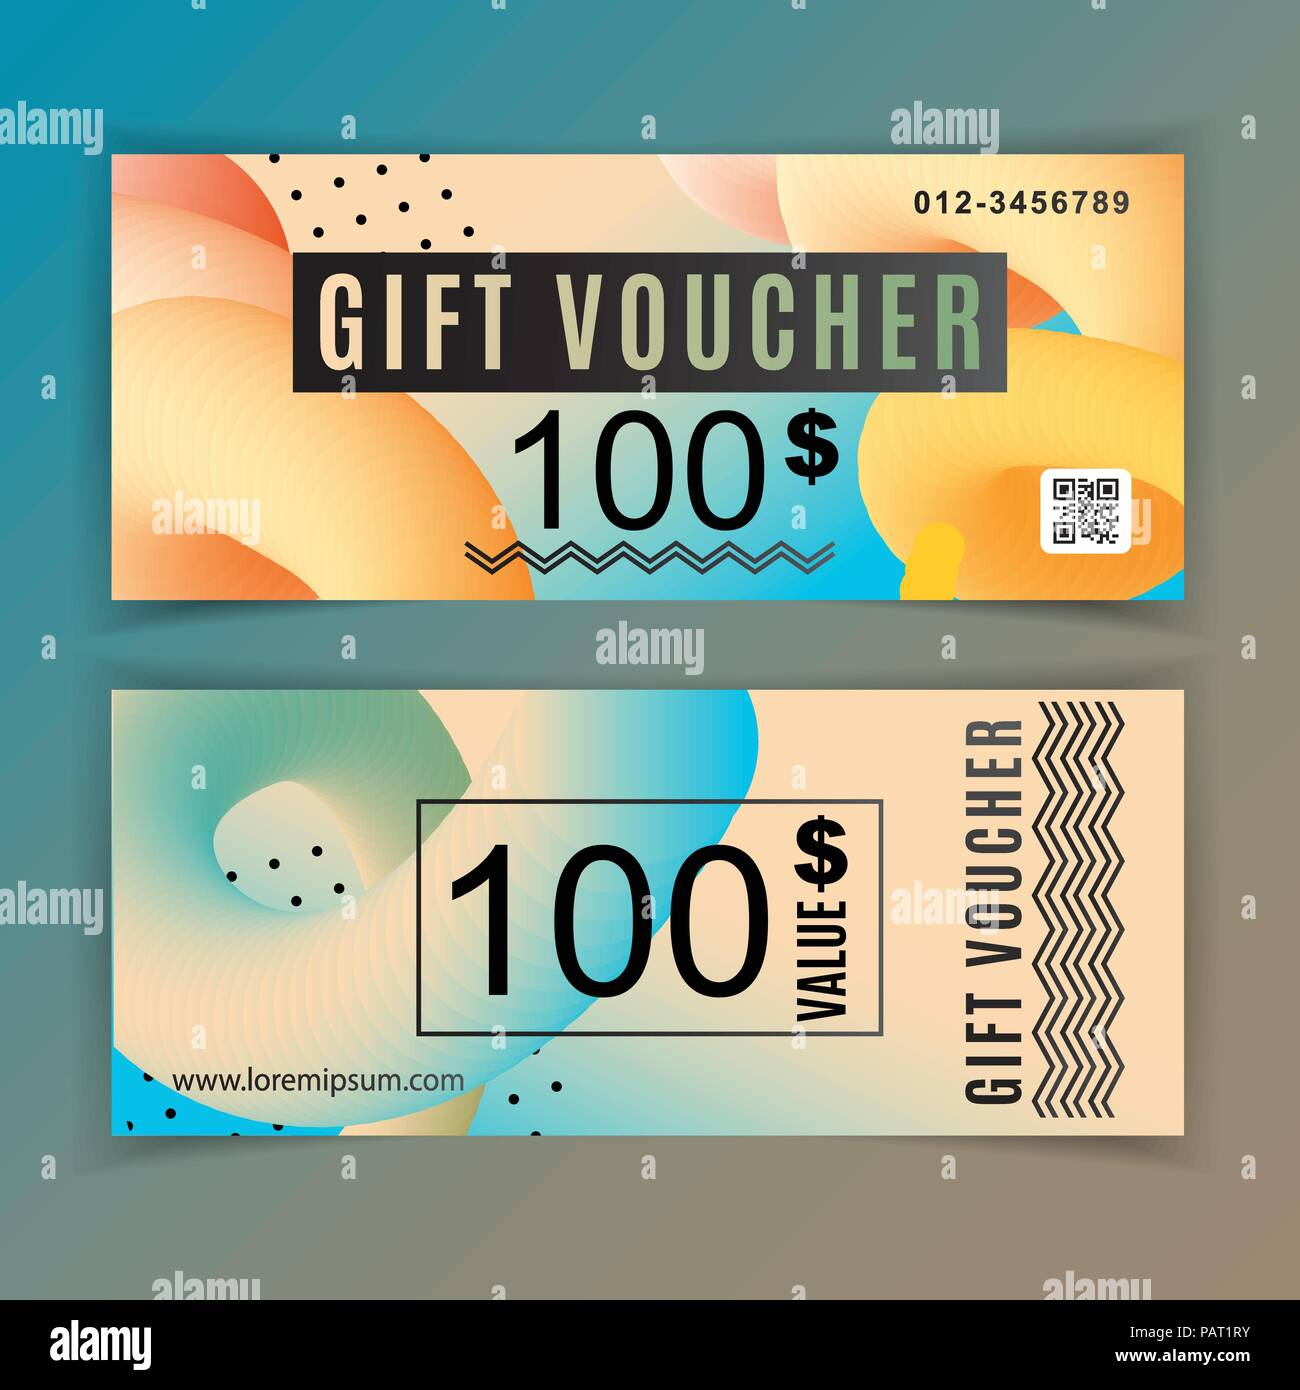 Vector gift voucher template universal flyer orange blue design vector gift voucher template universal flyer orange blue design elements gift voucher value 100 dollars for department stores business cheaphphosting Gallery